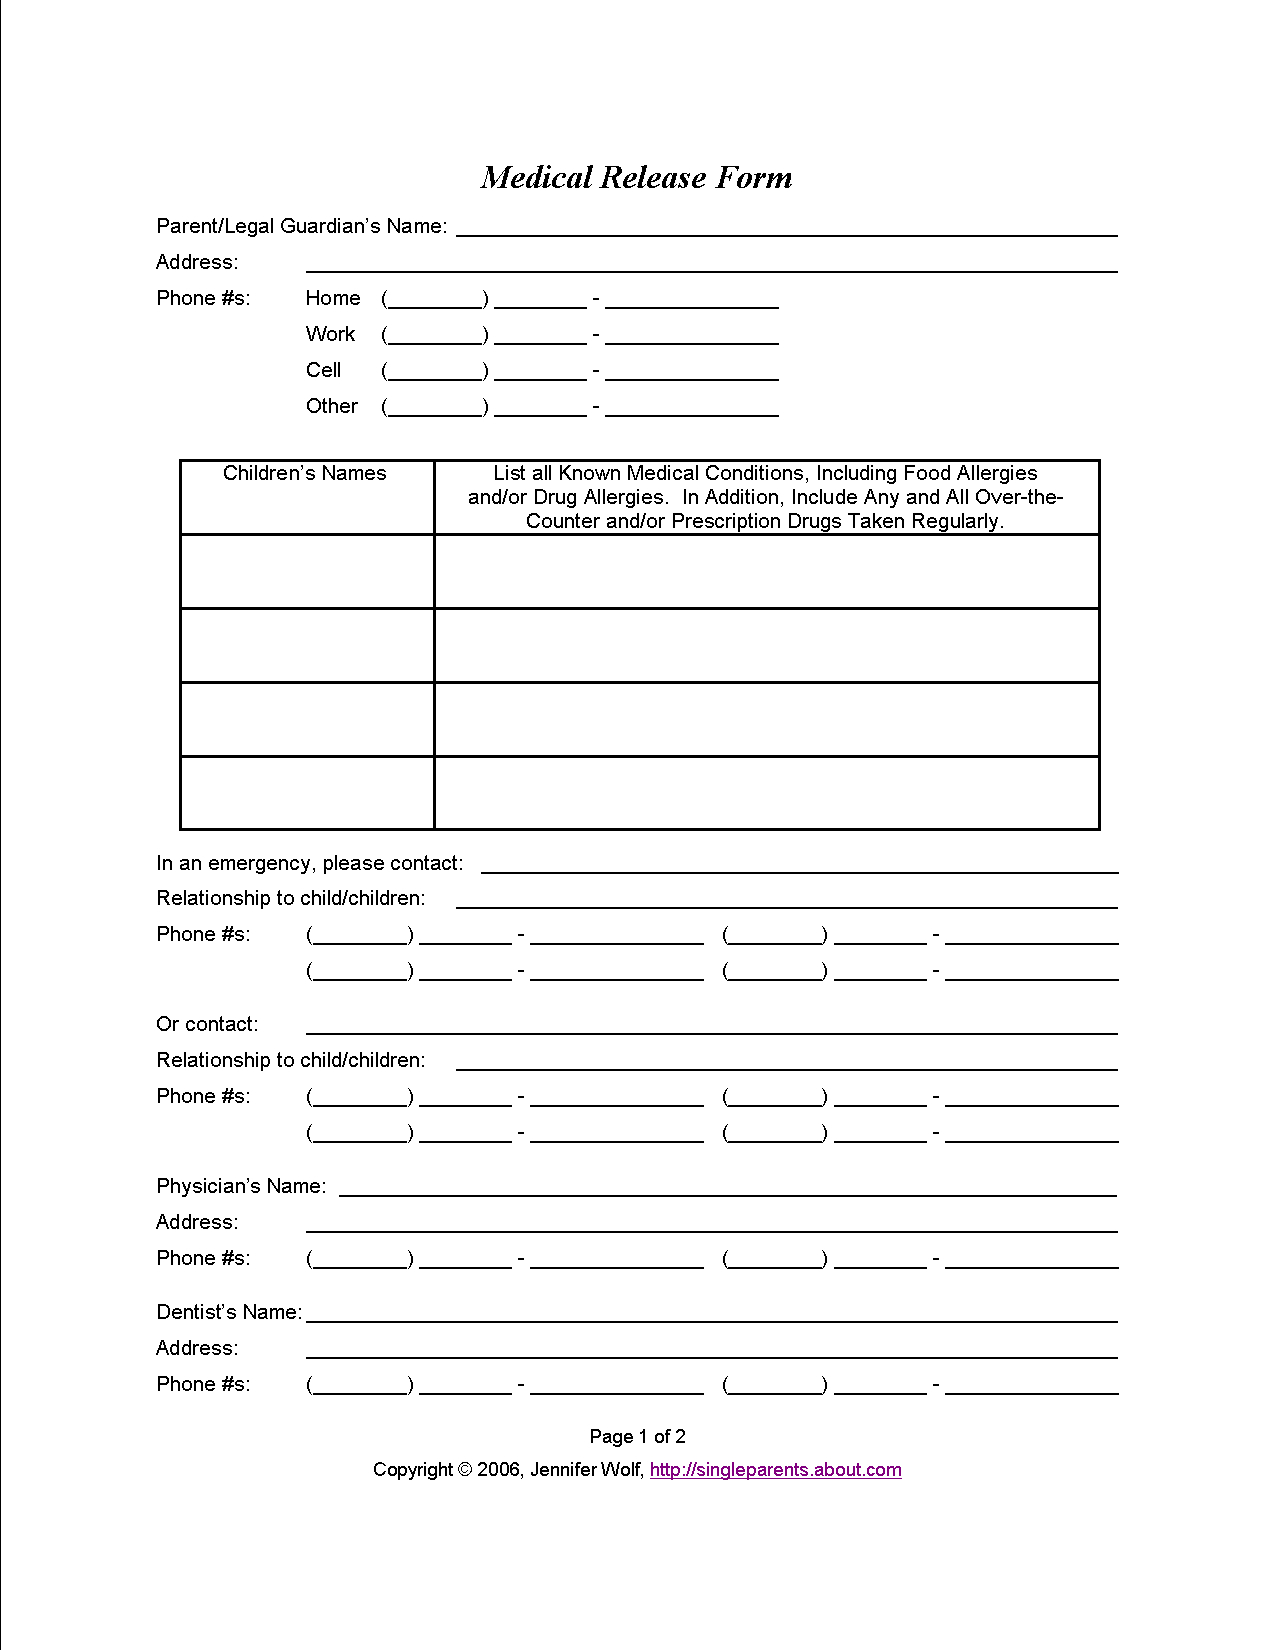 Do You Have A Medical Release Form For Your Kids?   Travel   Medical - Free Printable Caregiver Forms